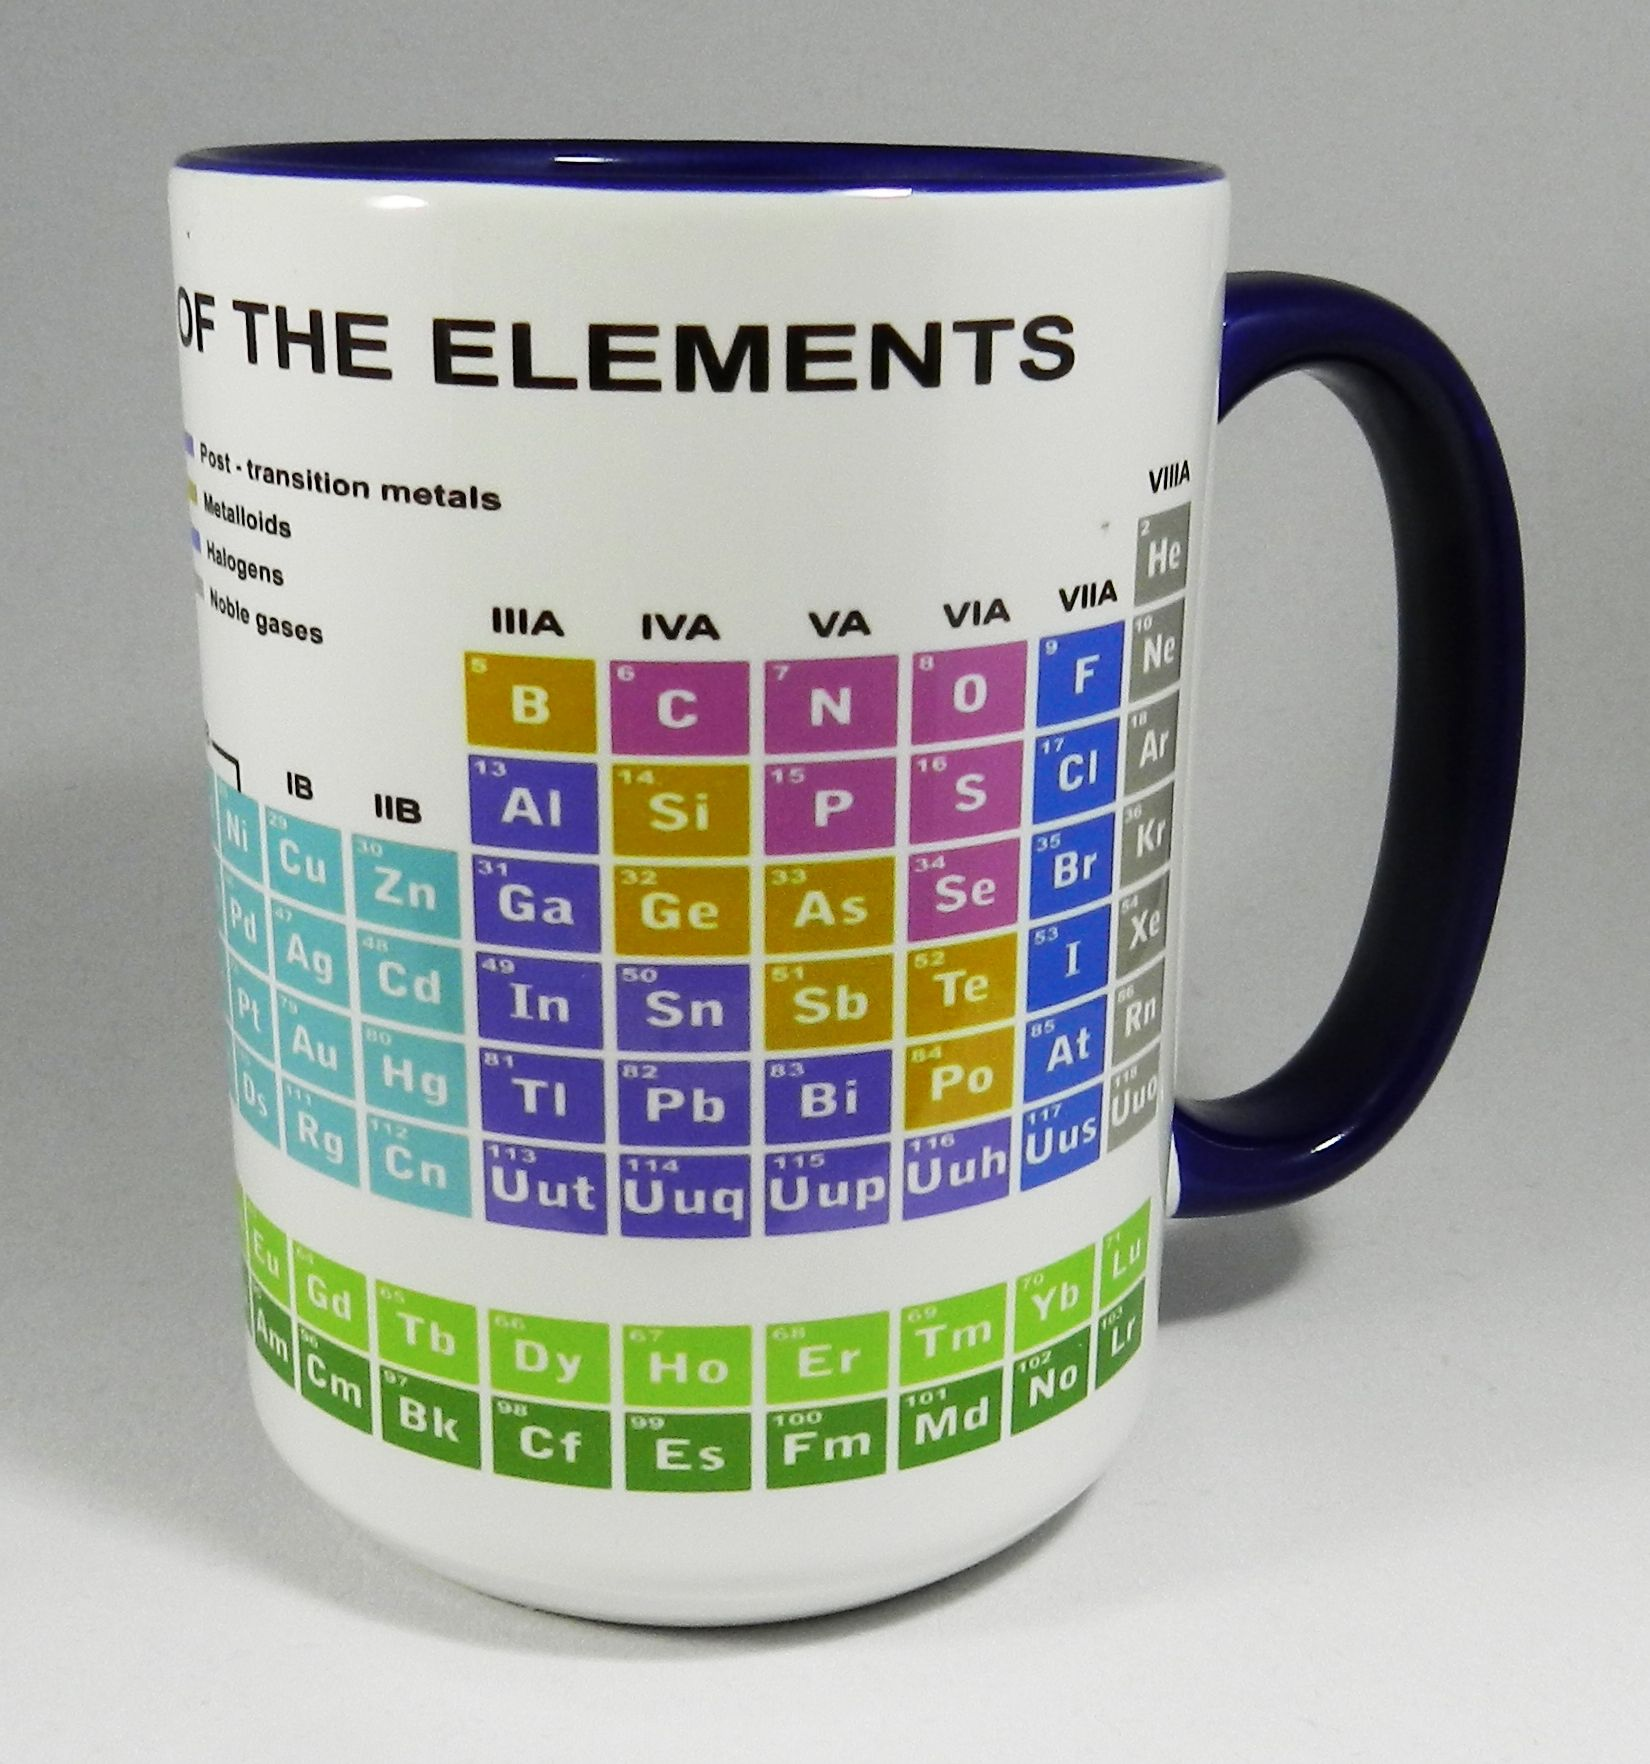 The periodic table of elements educational ceramic mug featuring the periodic table of elements educational ceramic mug featuring all the traditional groups metals transition elements the halogens etc urtaz Gallery